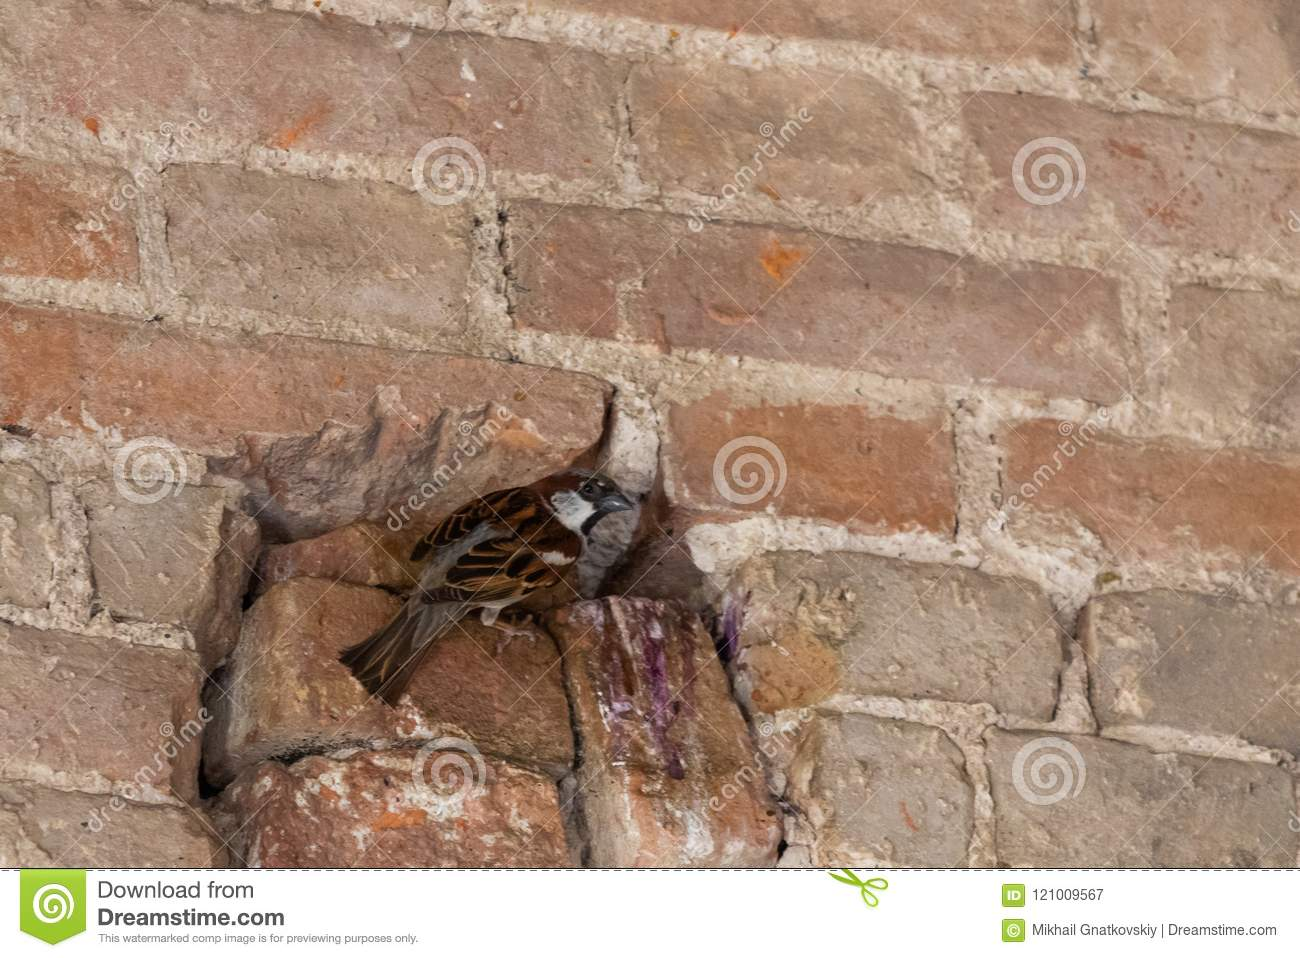 Sparrow in the hole. Nest in the wall